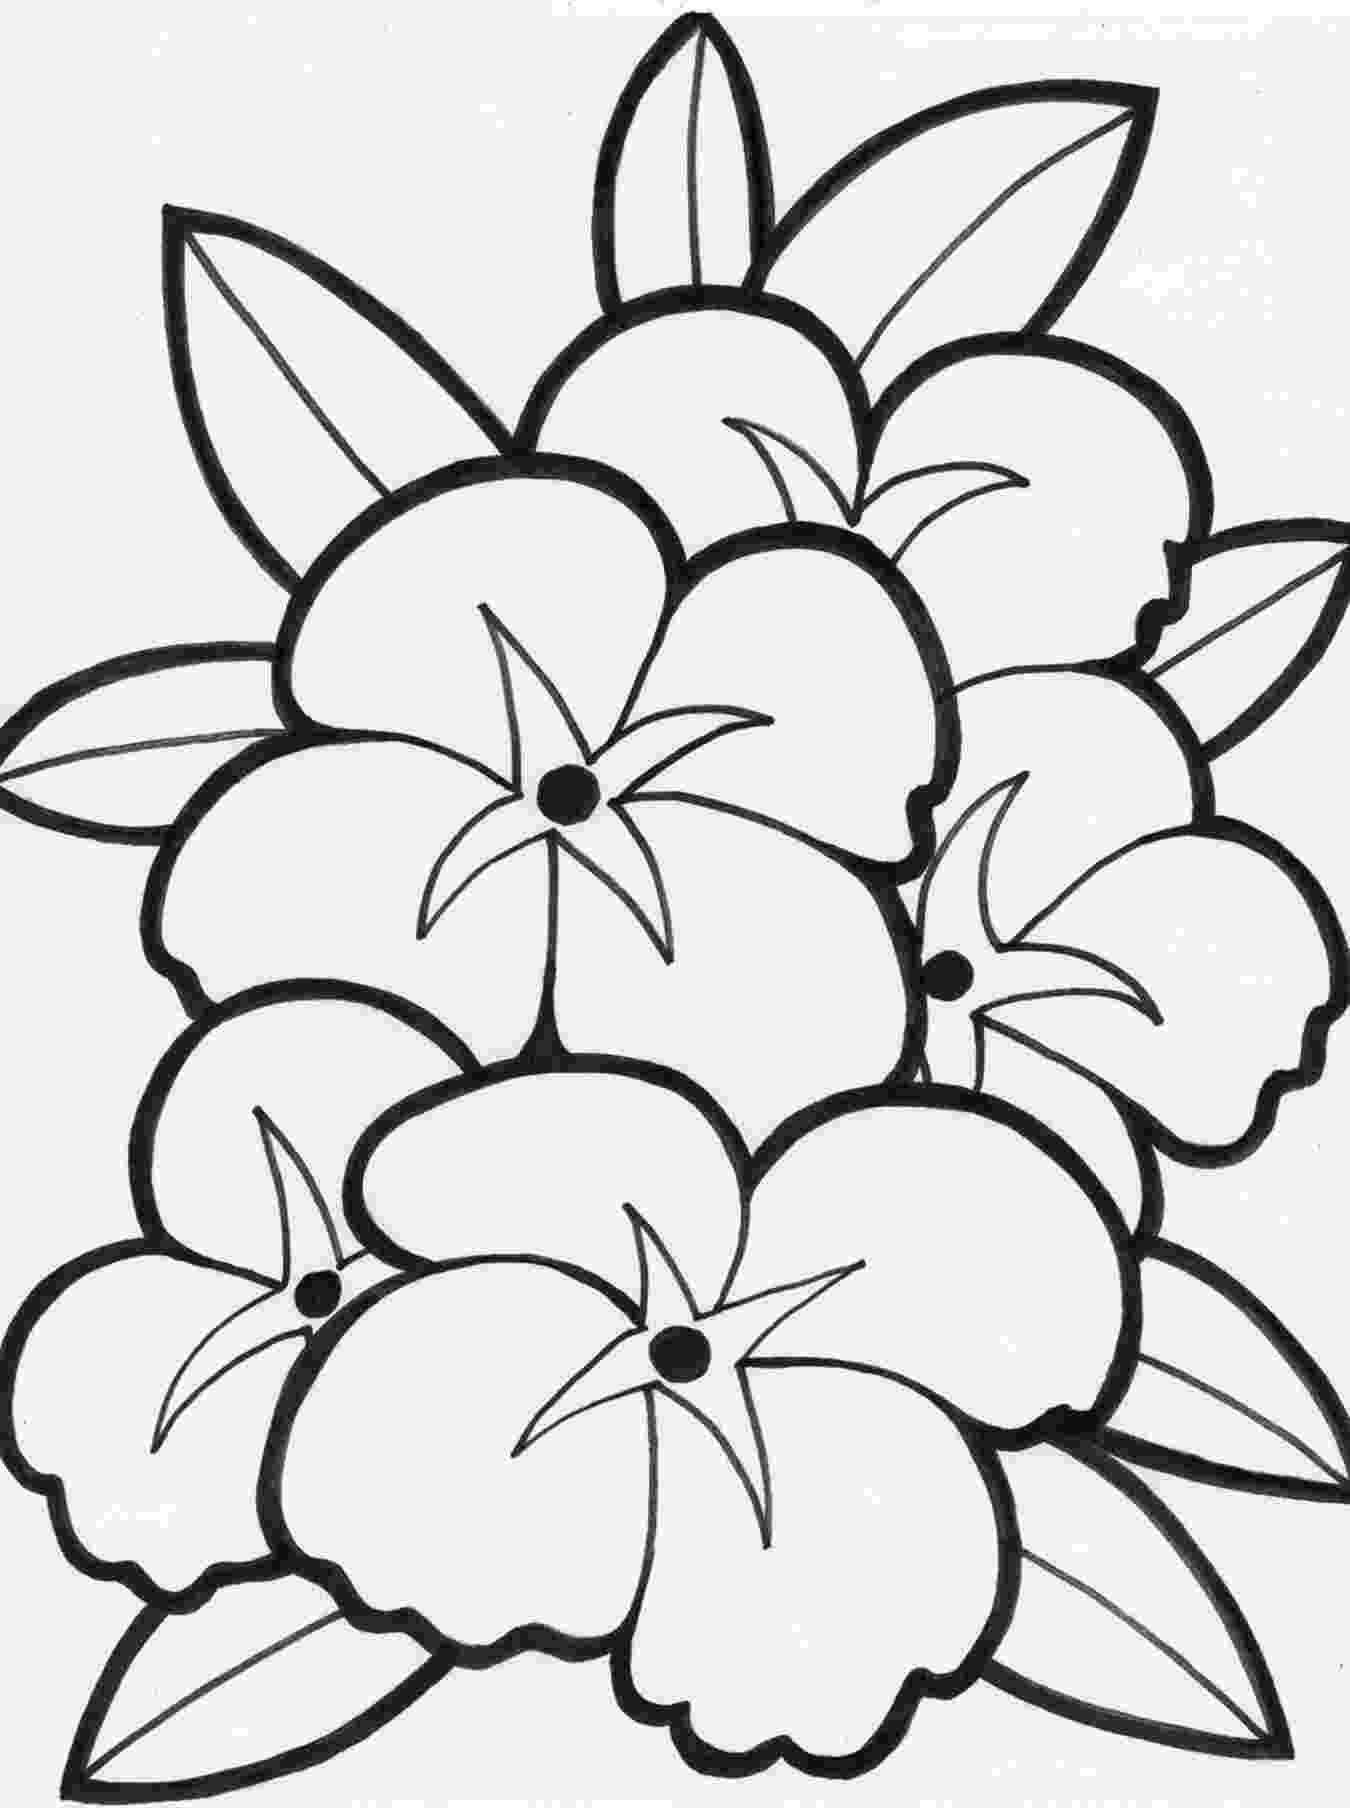 flower colouring pages to print free printable flower coloring pages for kids cool2bkids to print pages colouring flower